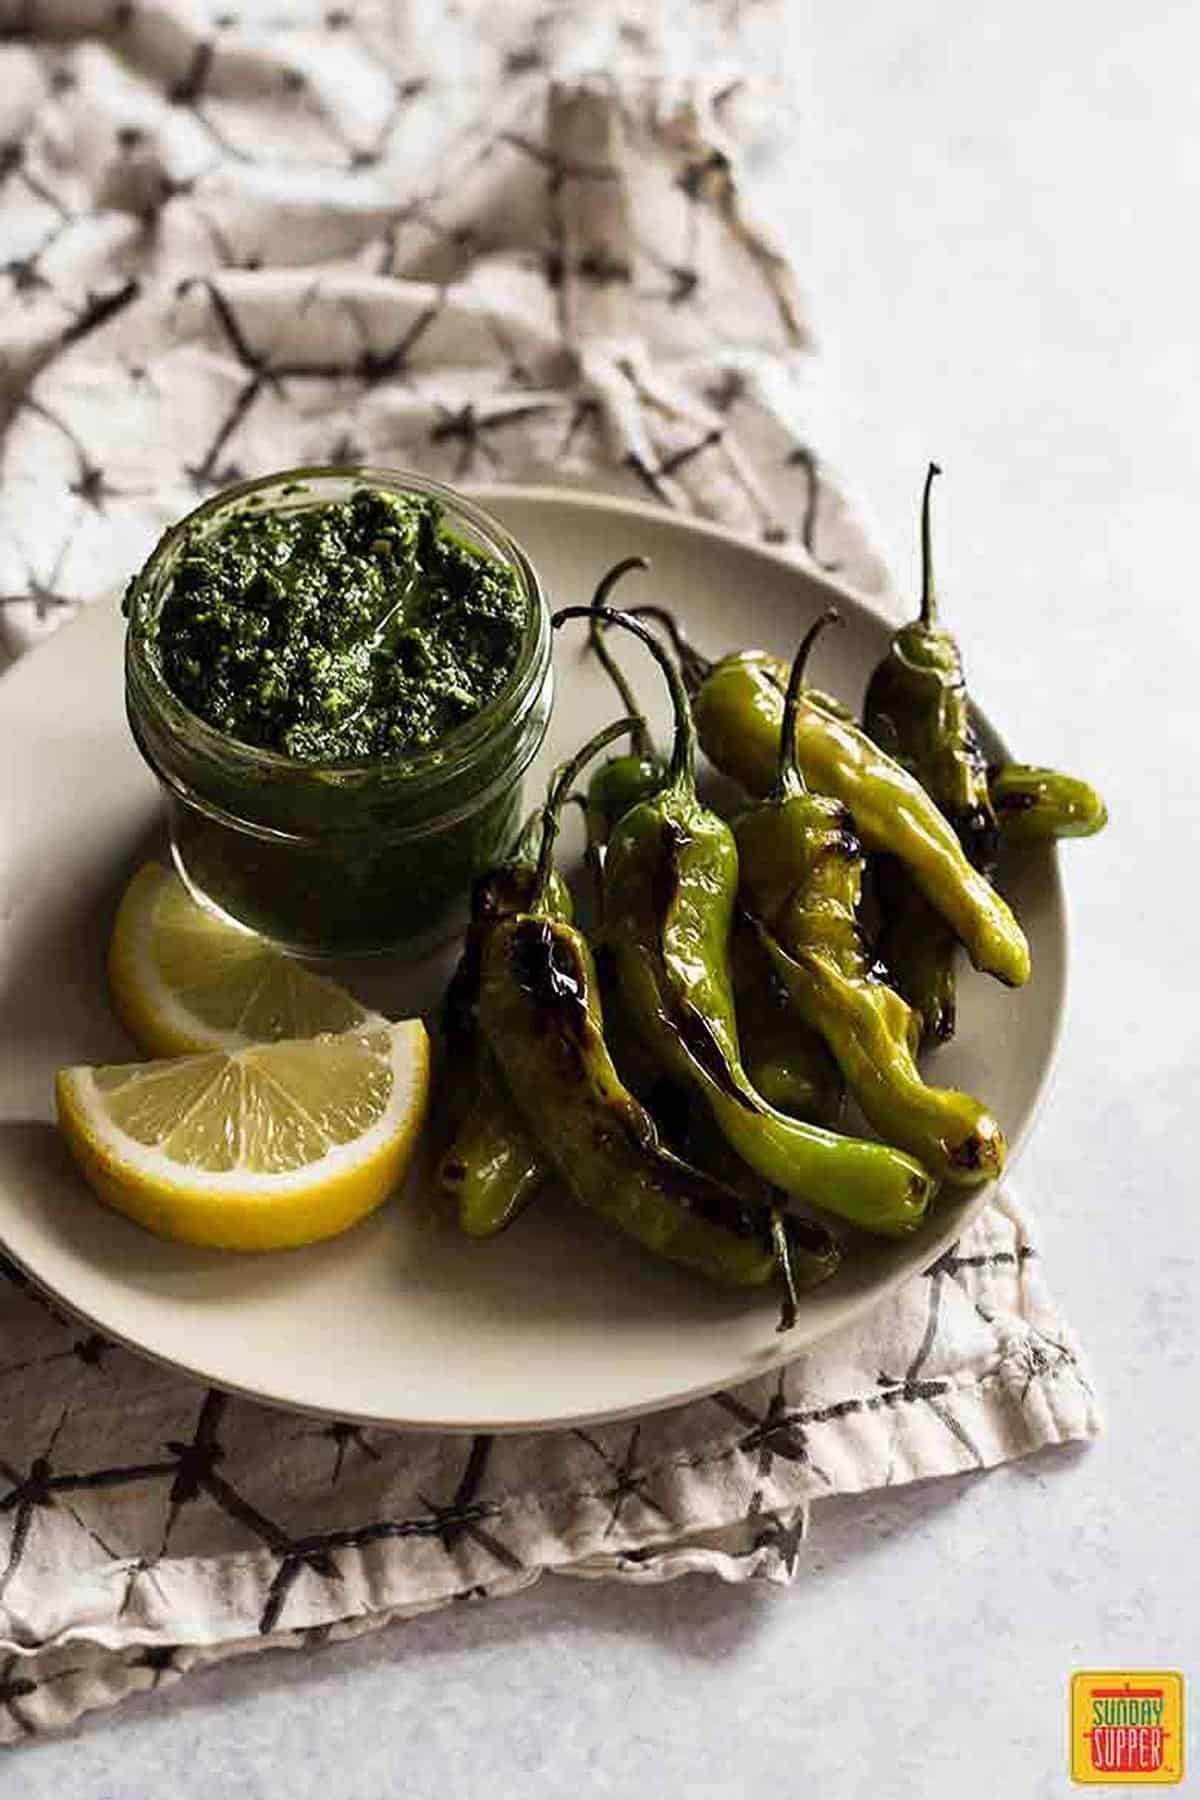 Close up of shishito peppers on a white plate with pesto dip in a jar and lemon wedges